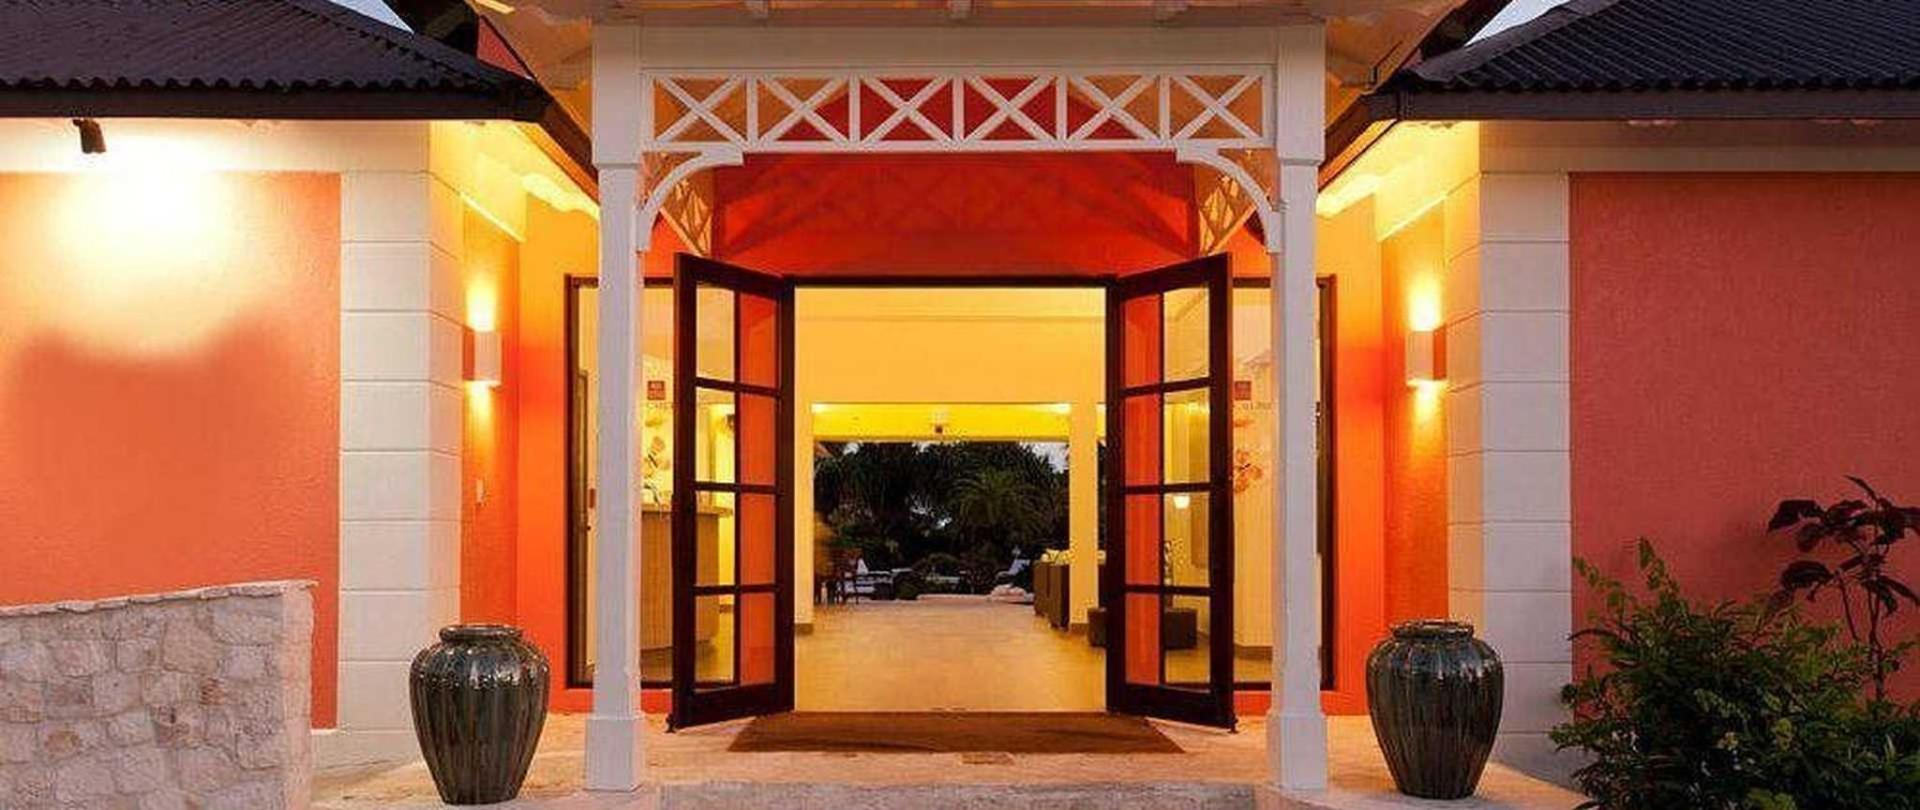 Turks And Caicos Hotel Grace Bay Resort Ports Of Call Islands